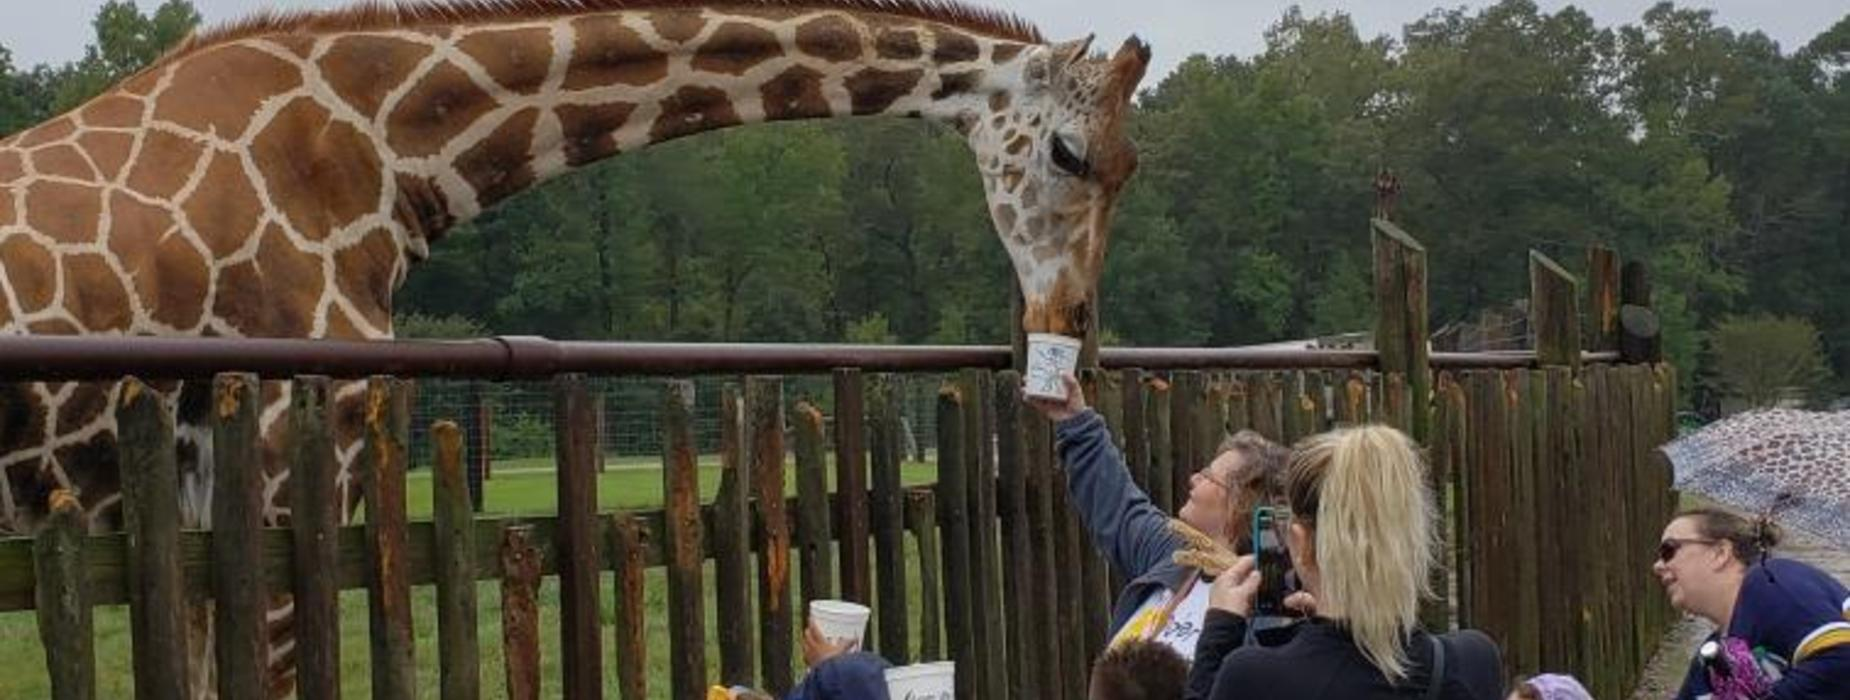 Let's feed the giraffe